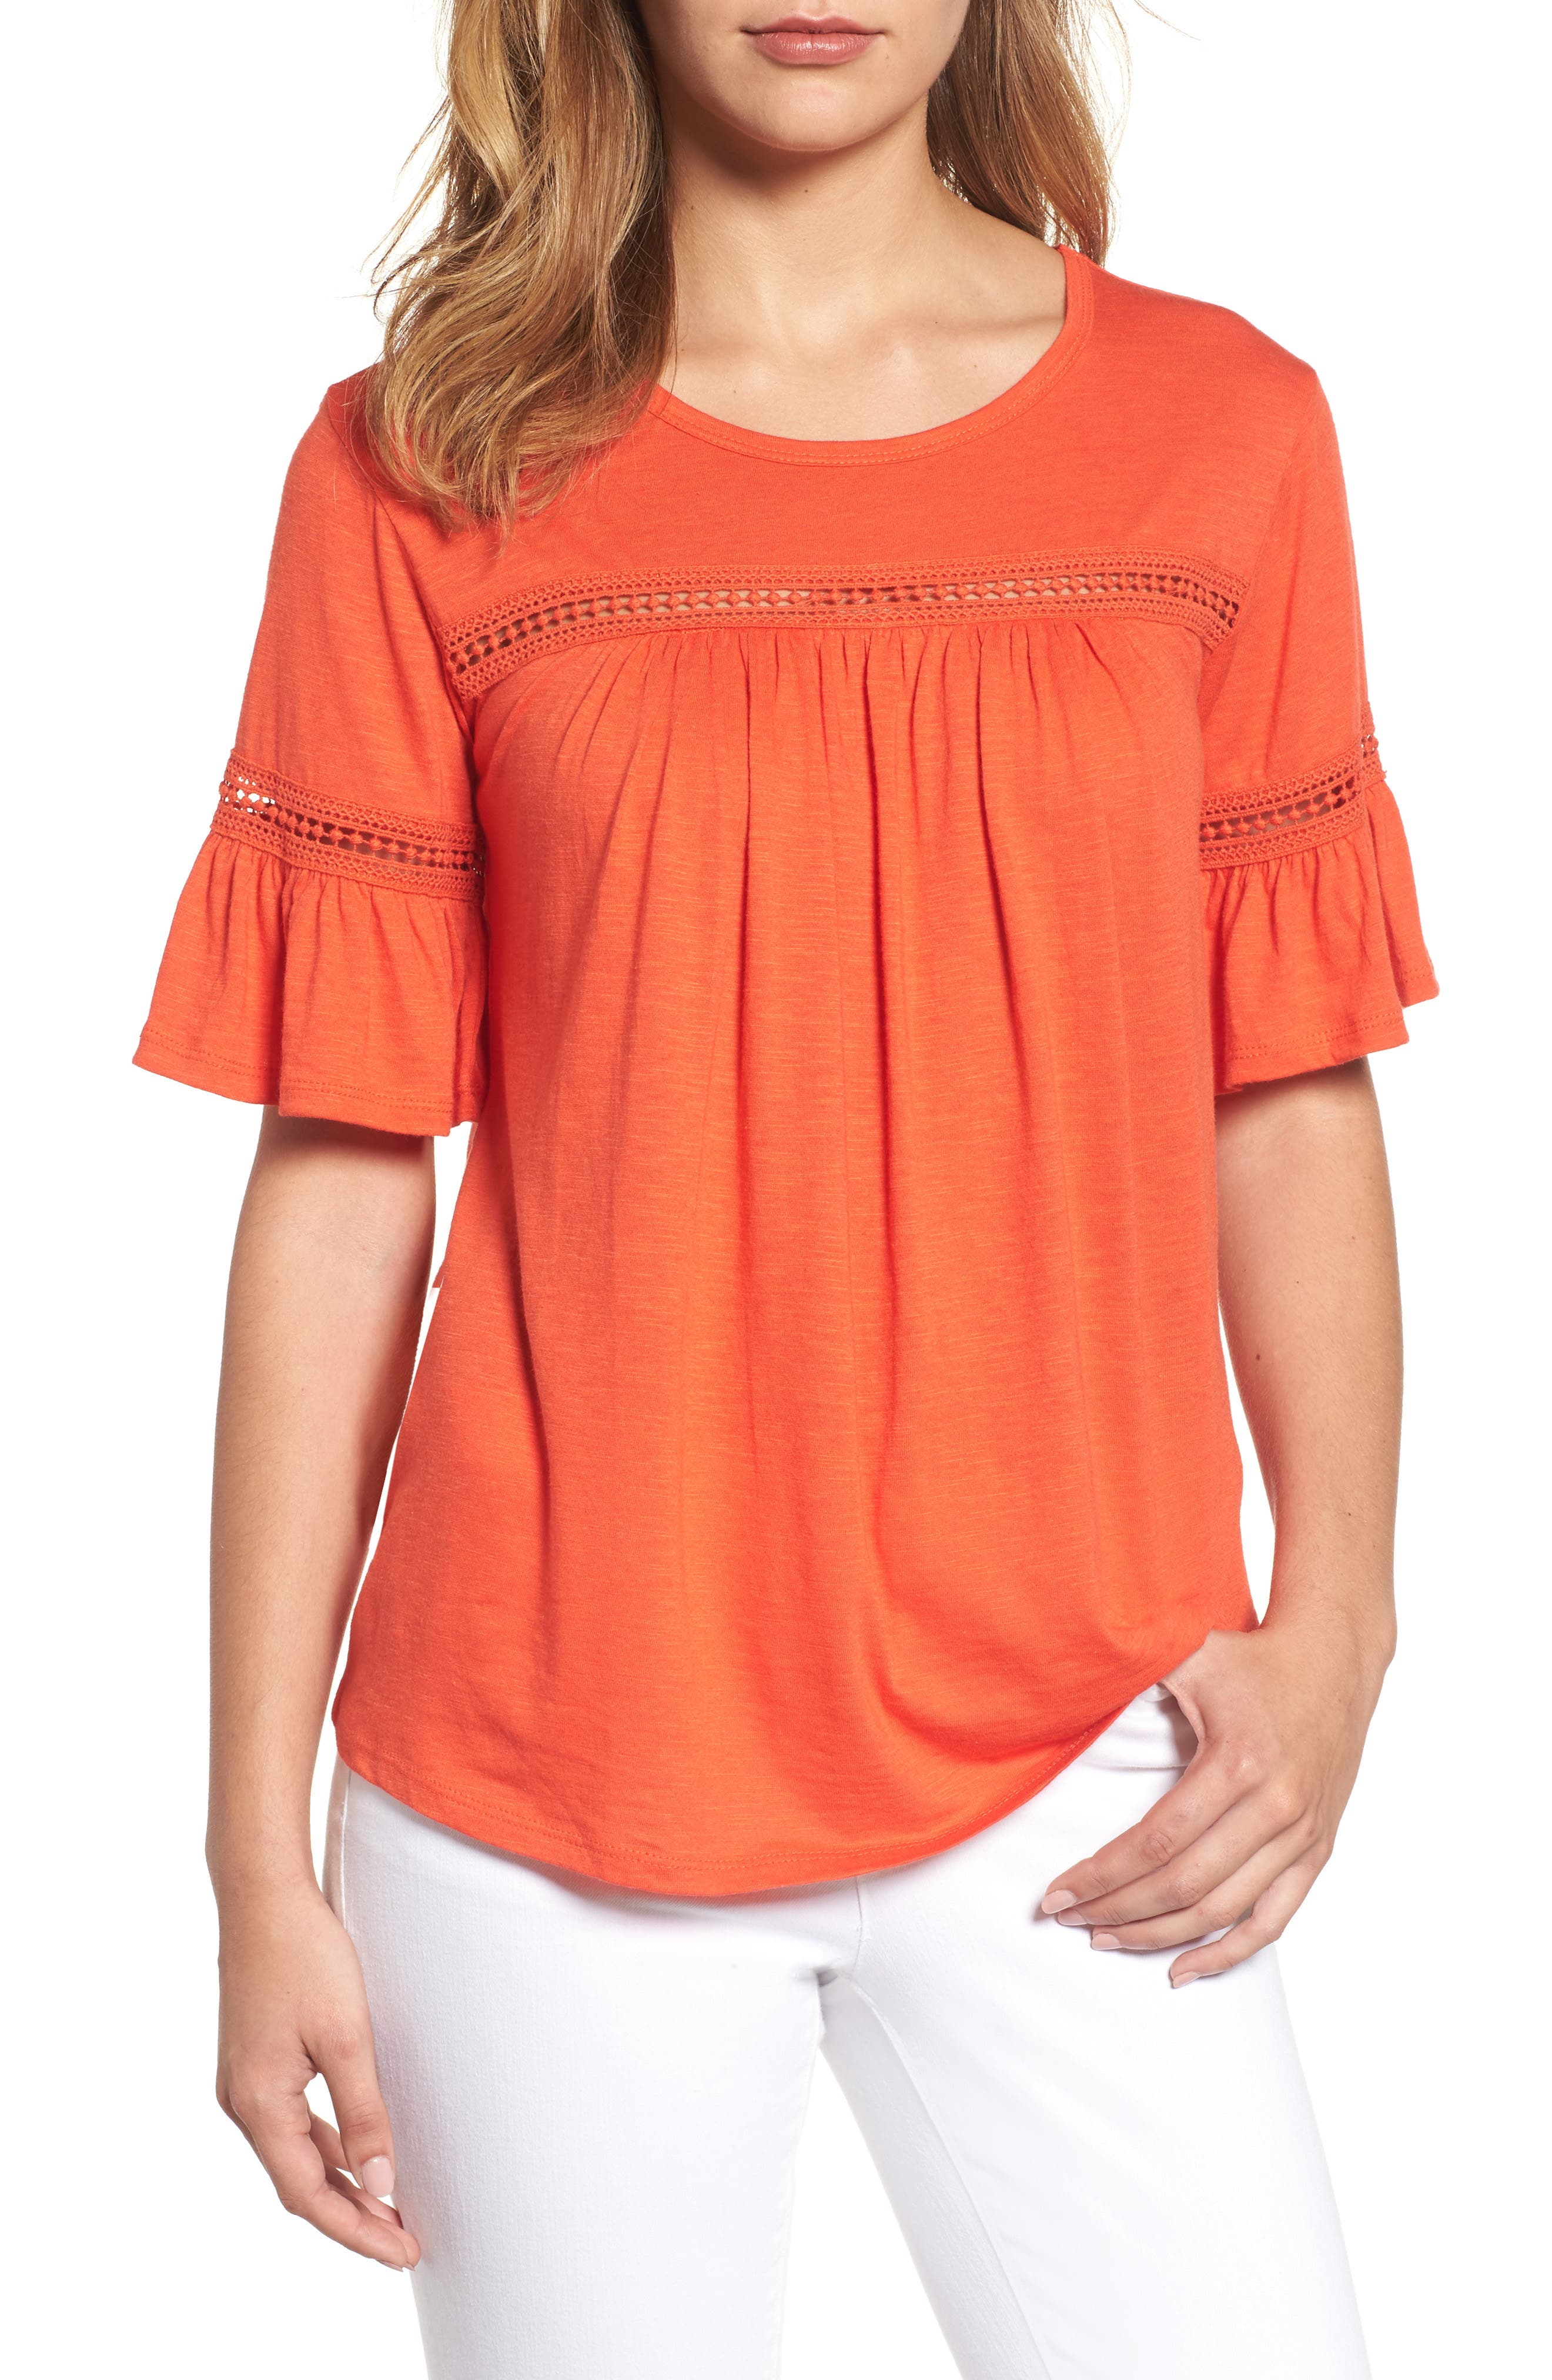 Bobeau Lace Trim Bell Sleeve Top (Regular & Petite)